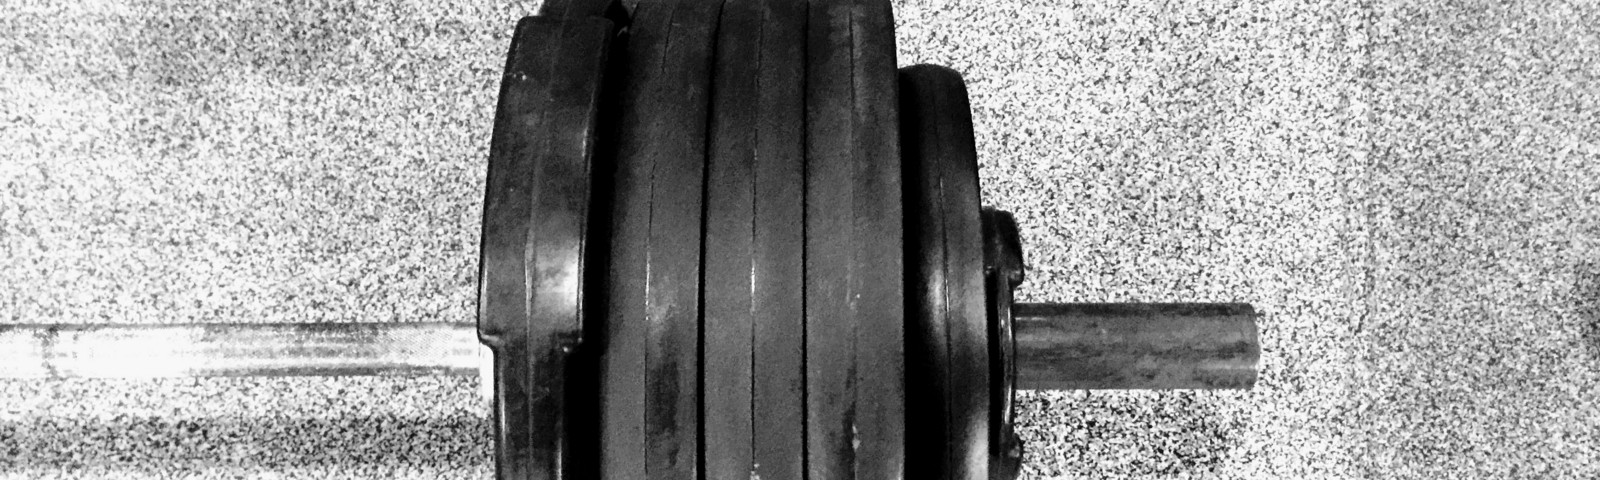 A barbell with plates on the floor